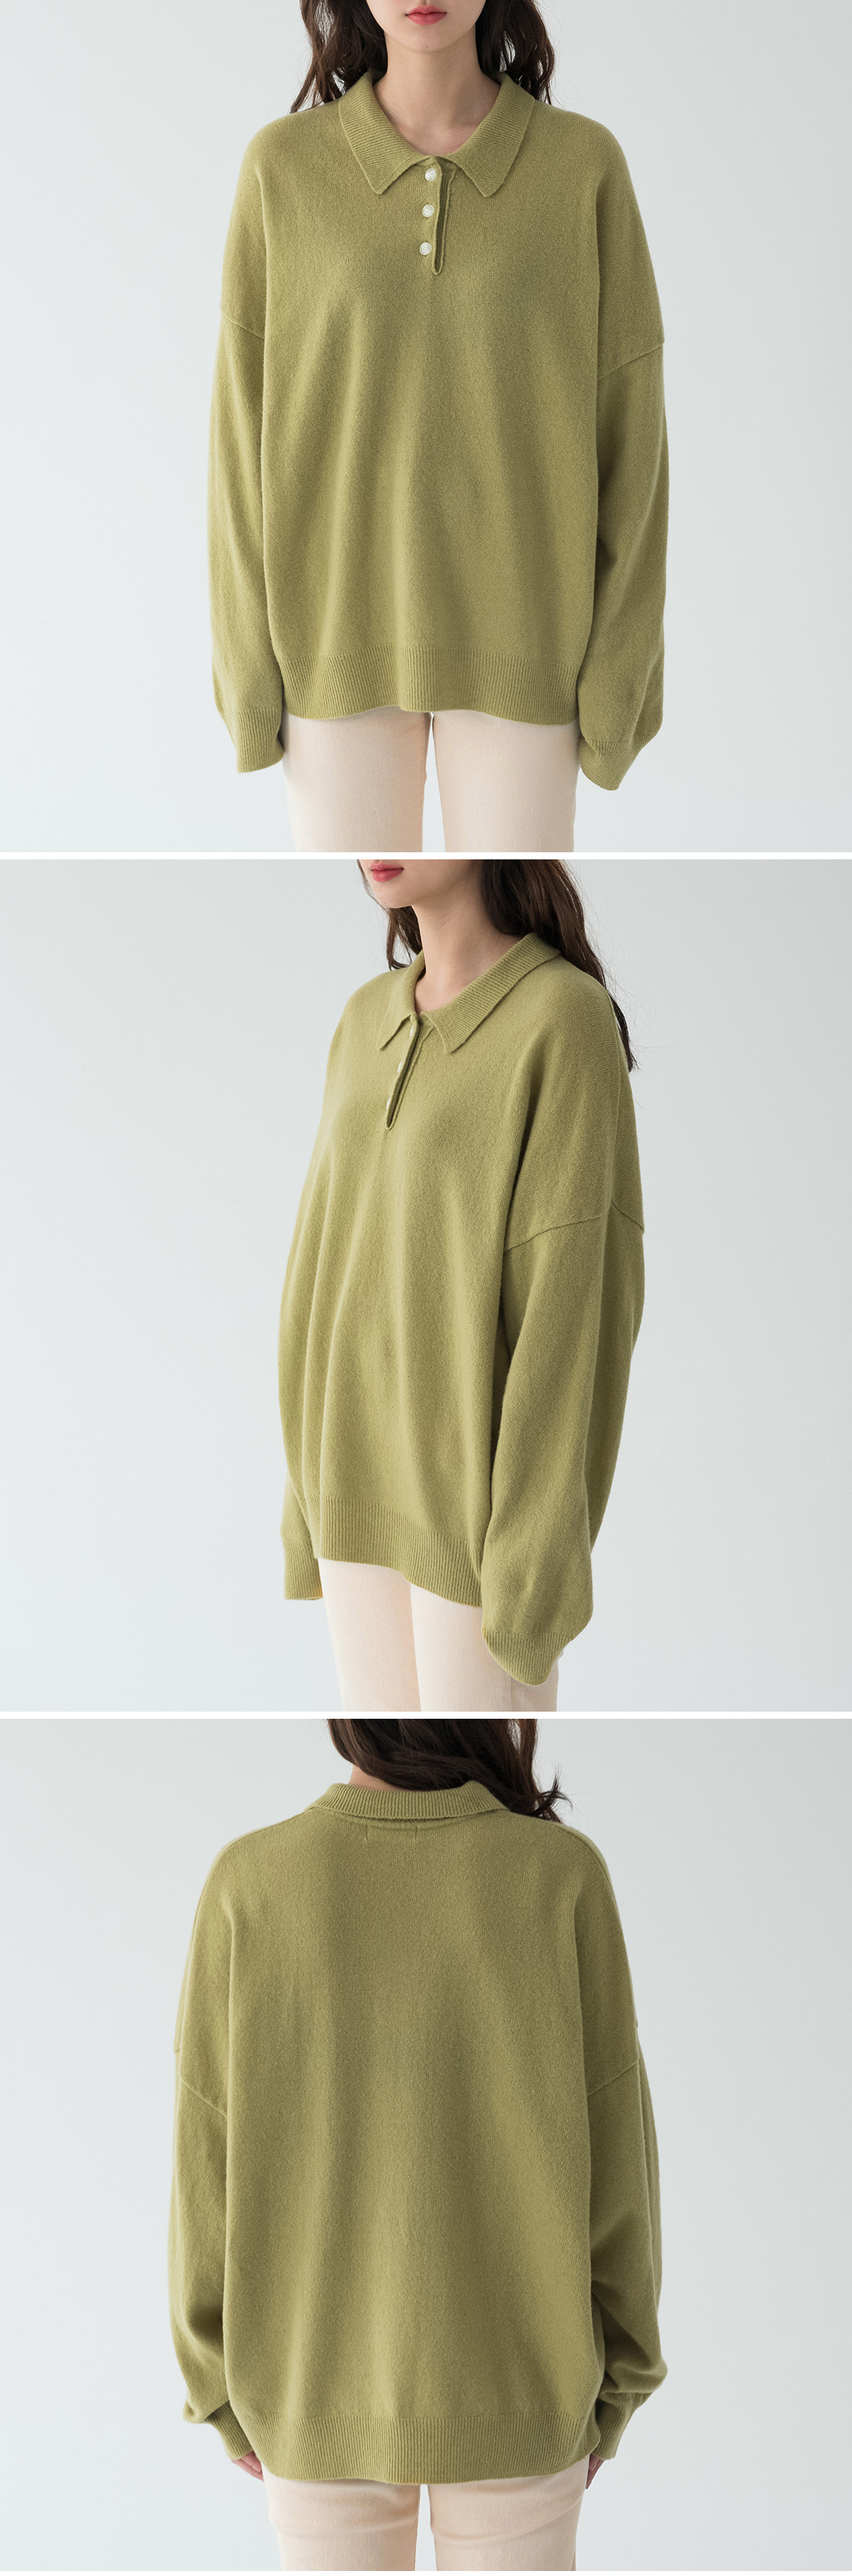 over collar neck wool knit